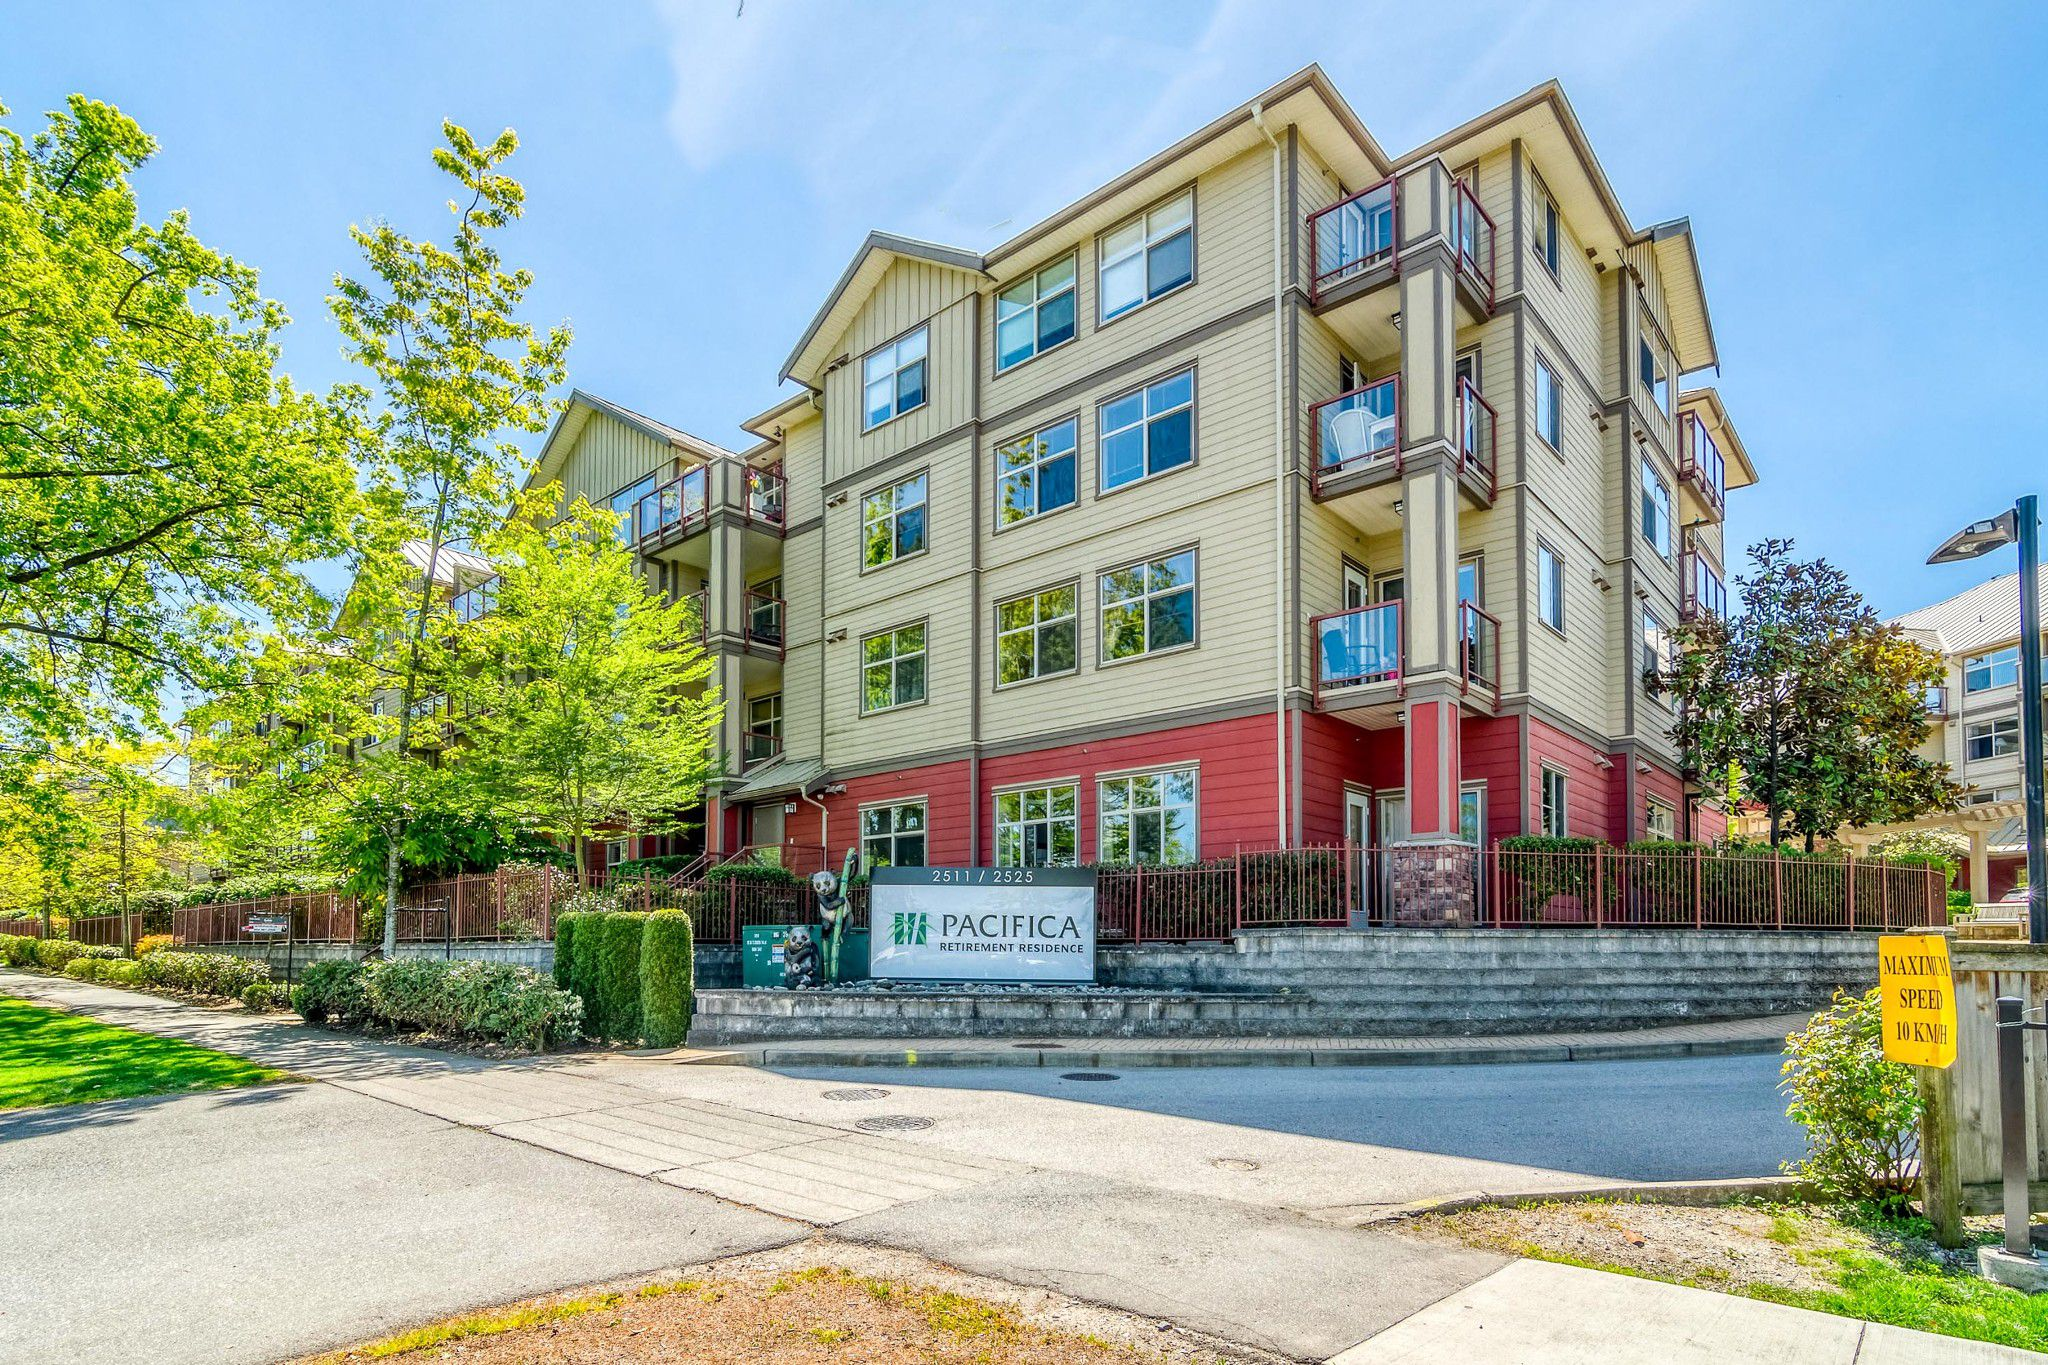 """Main Photo: 102 2511 KING GEORGE Boulevard in Surrey: King George Corridor Condo for sale in """"PACIFICA"""" (South Surrey White Rock)  : MLS®# R2368451"""